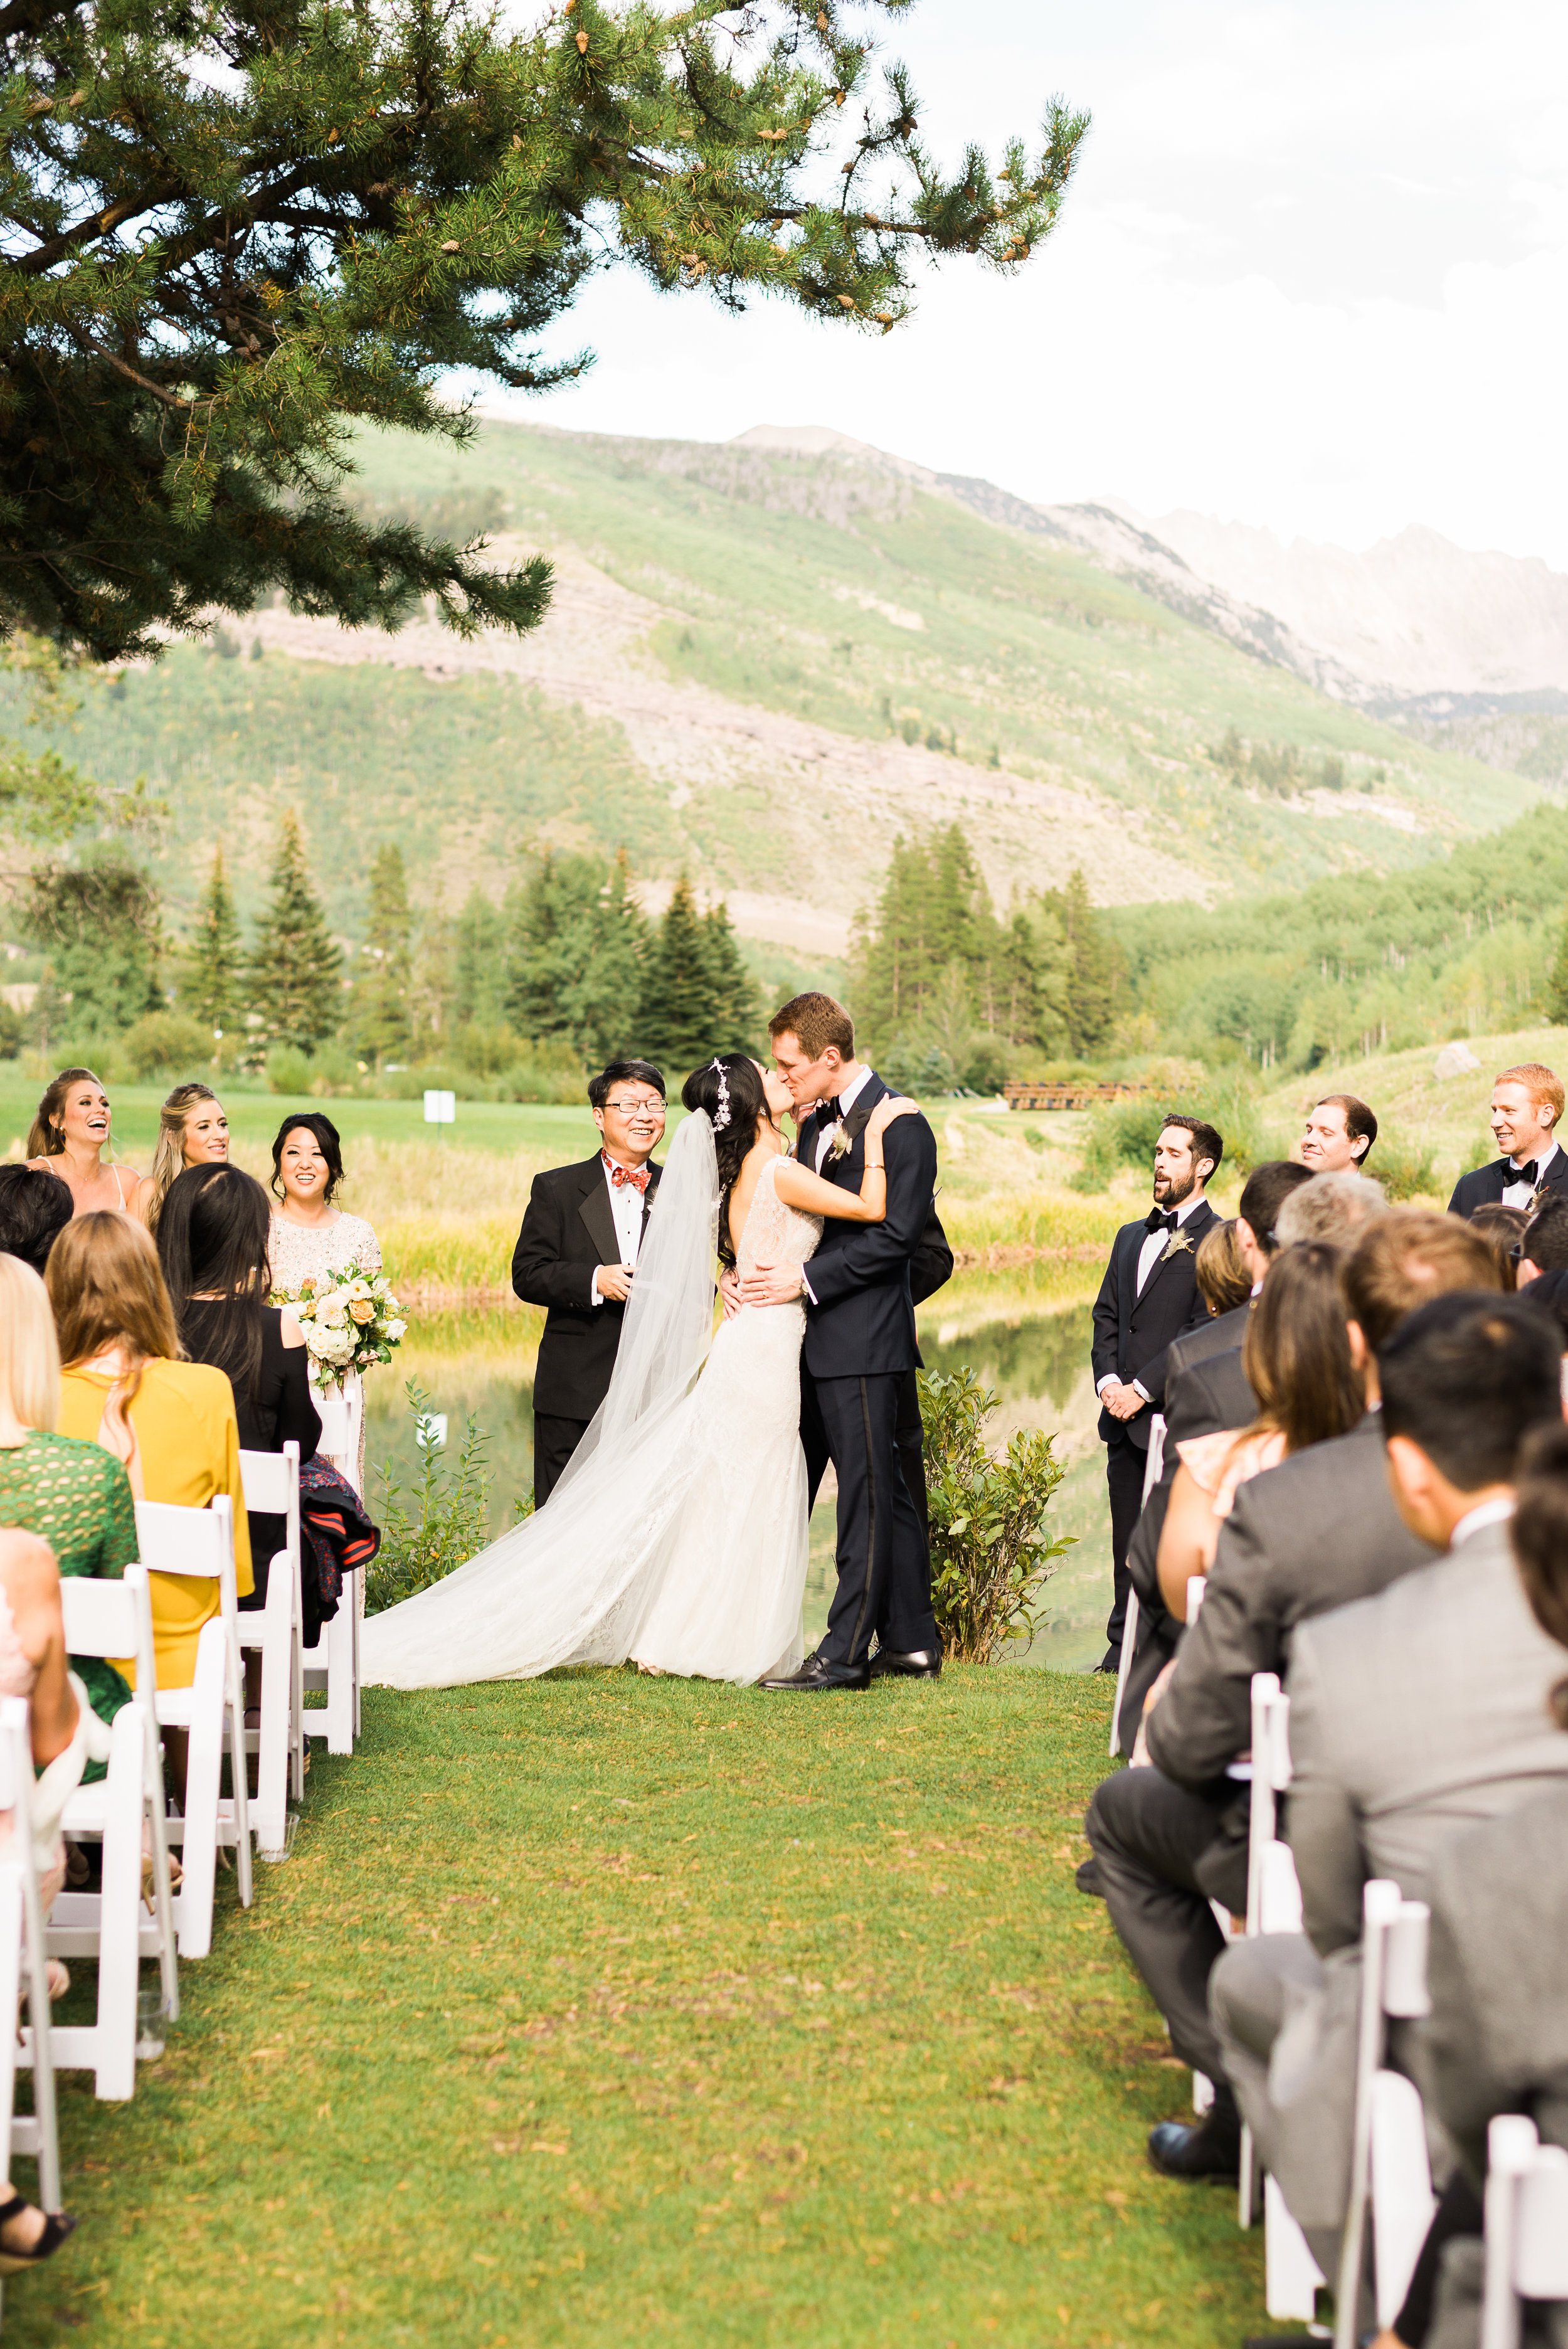 nichole-andrew-vail-mountain-wedding-104.jpg